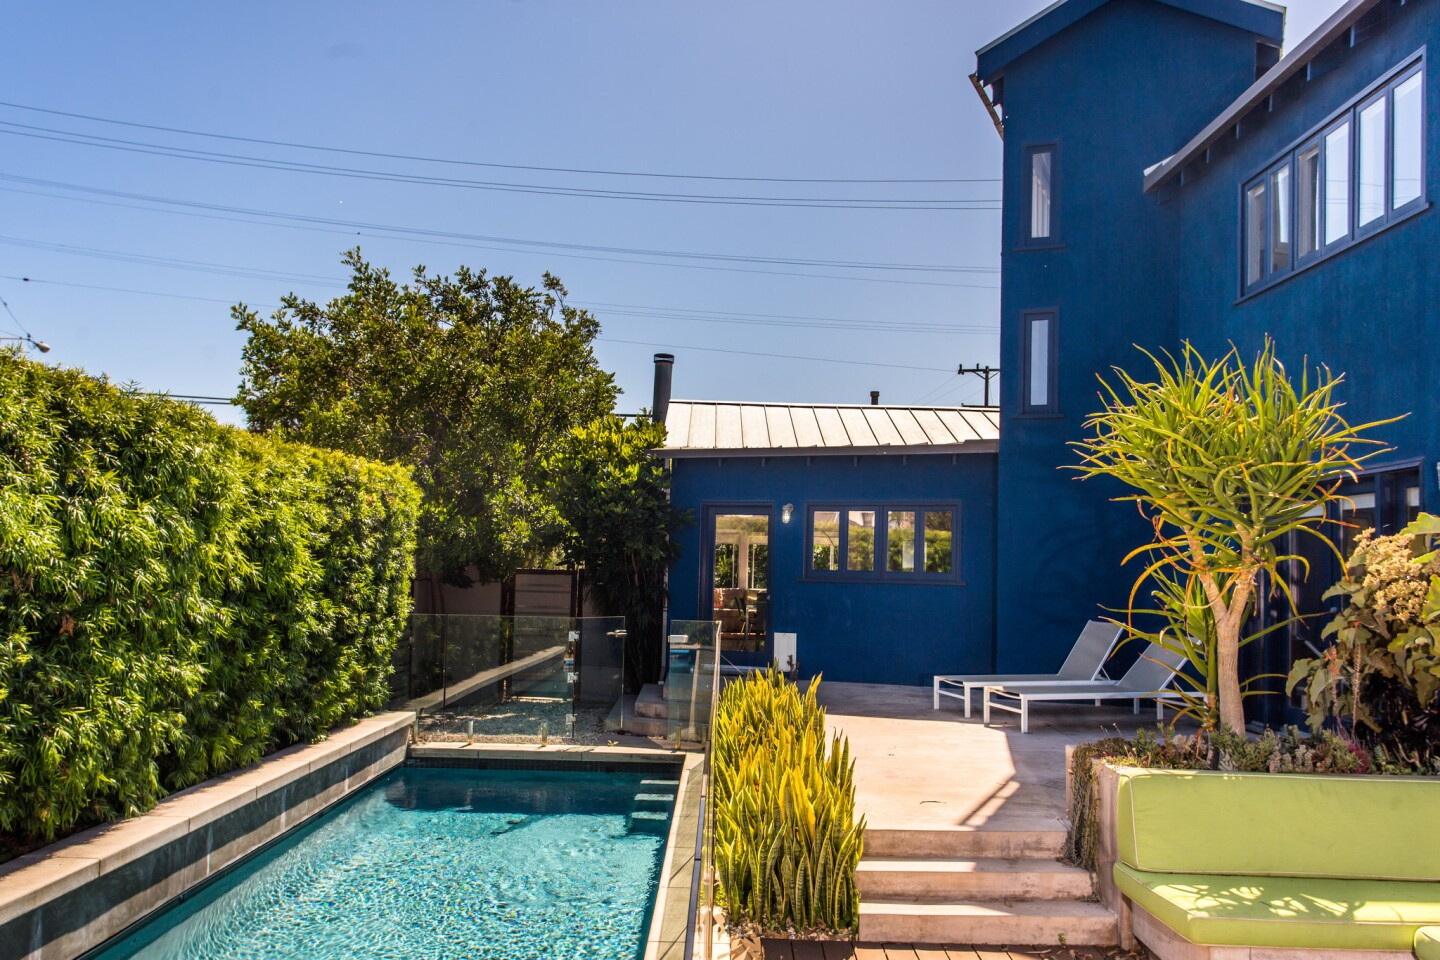 Home of the Day: Big blue in Santa Monica's Sunset Park